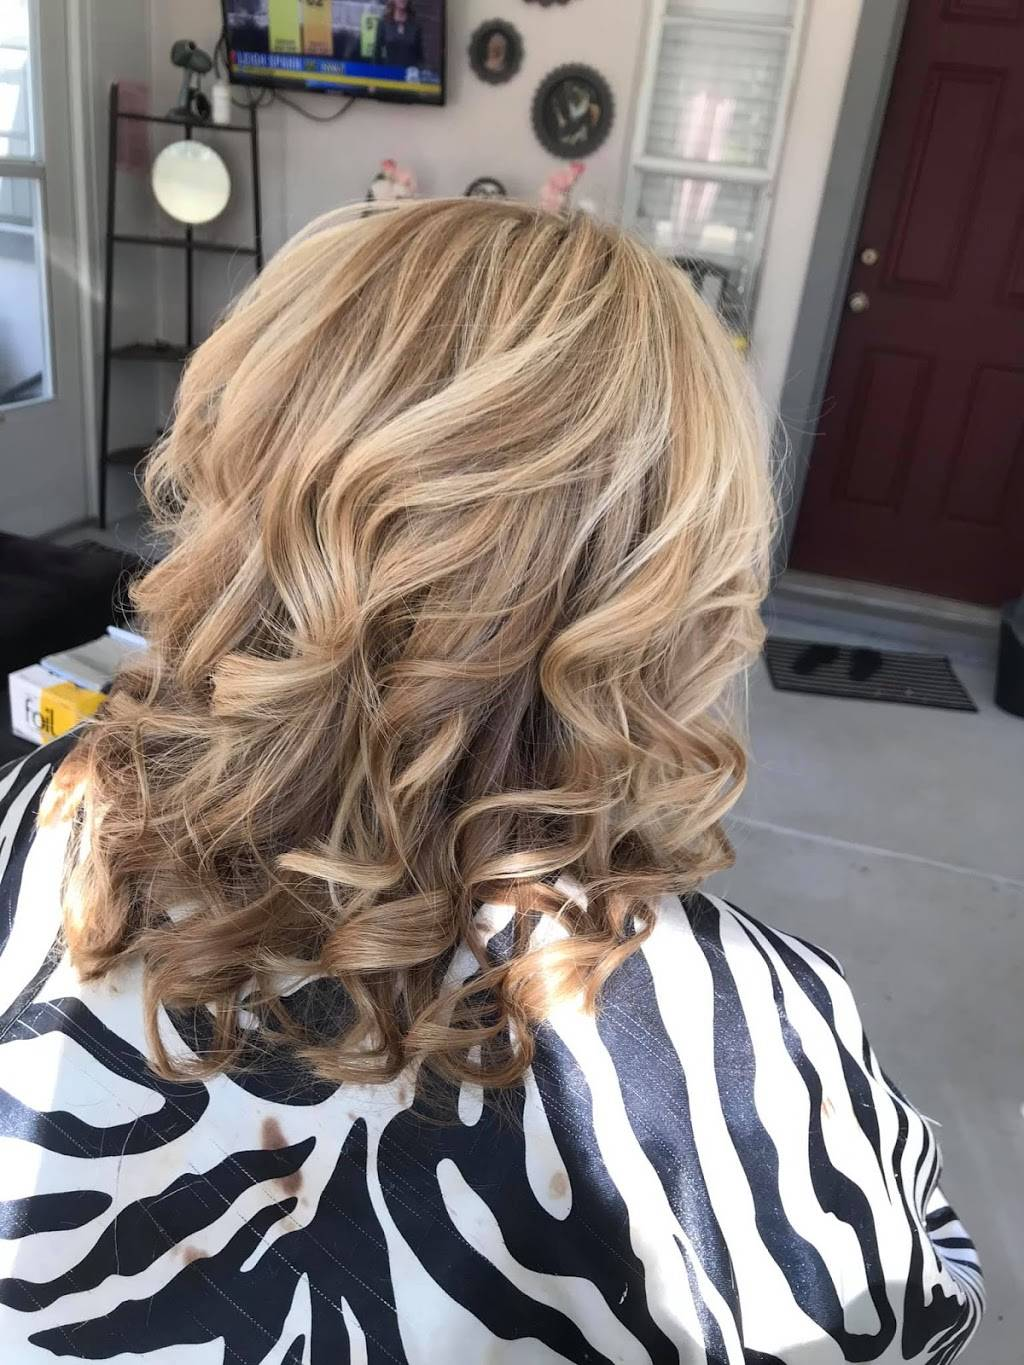 Bella Leighs Salon - hair care    Photo 1 of 4   Address: 11107 Riverview Dr, Riverview, FL 33578, USA   Phone: (813) 417-0265